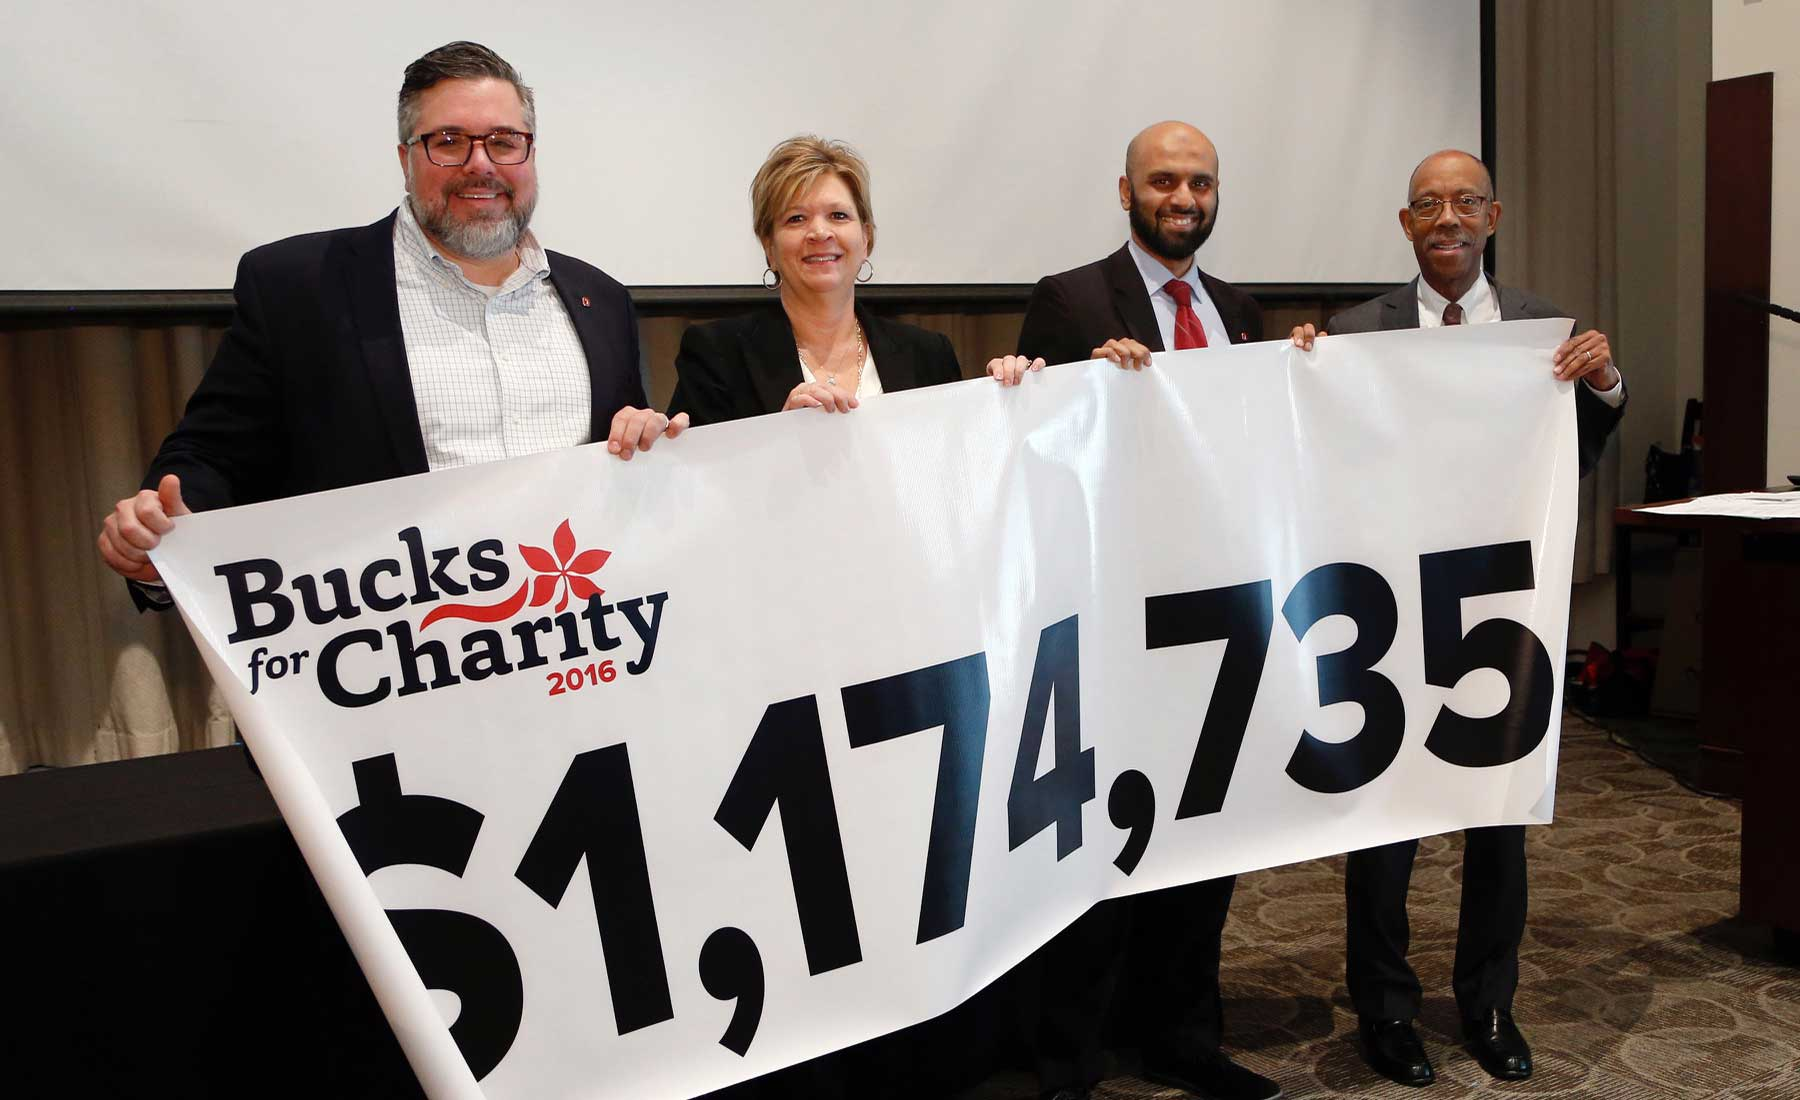 Mike Hofherr, Marti Taylor, Mamoon Syed and President Drake with the total displayed on a banner